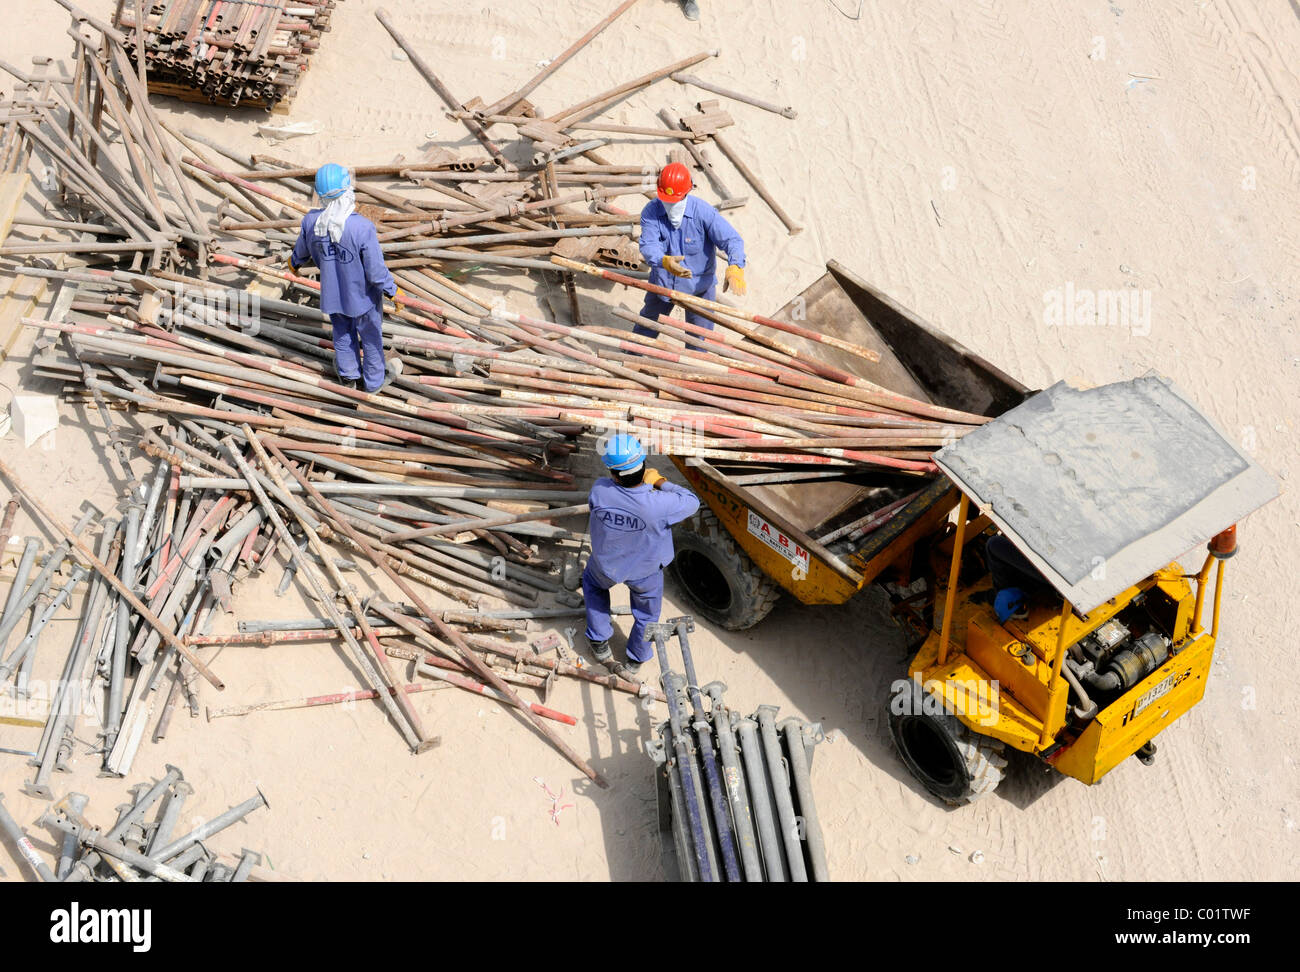 Construction workers sorting scaffolding poles, Dubai, United Arab Emirates, Middle East - Stock Image